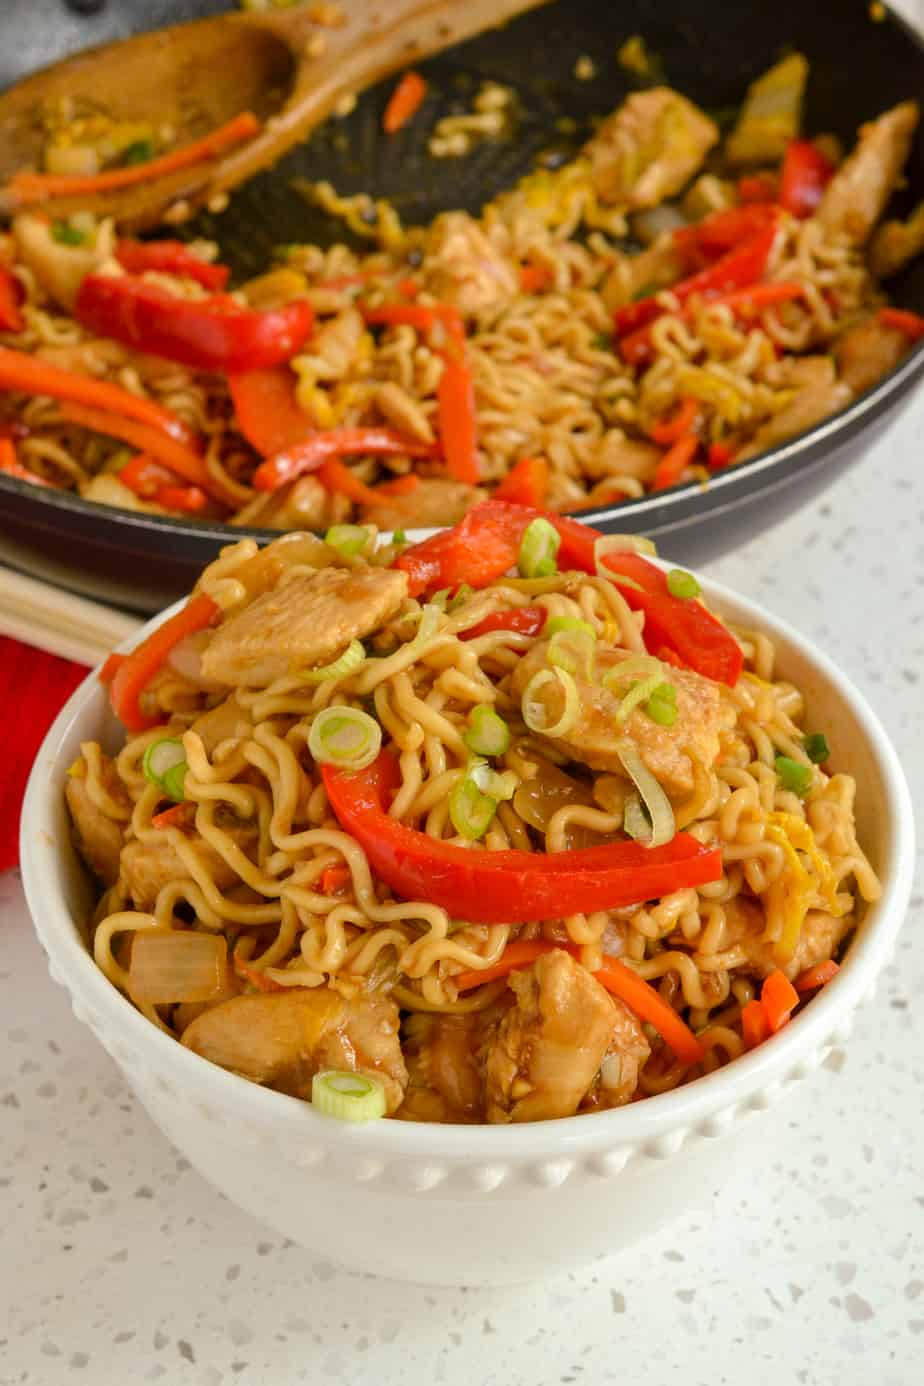 A bowl of chicken, vegetable and noodle stir fry.